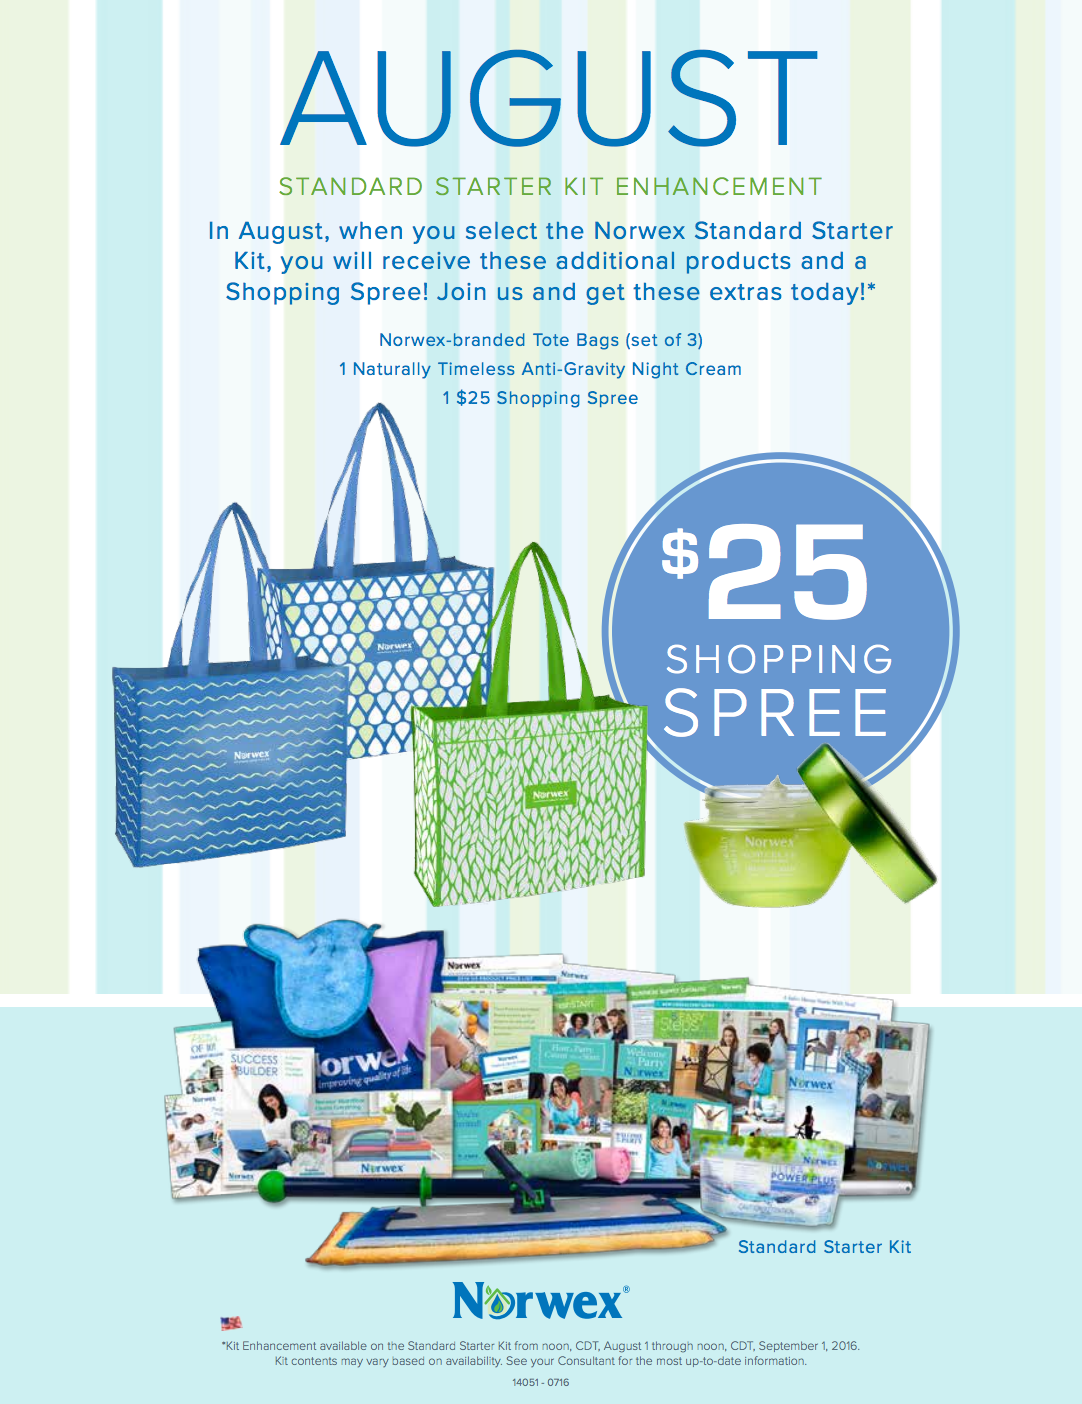 Norwex_New_Consultant_Kit_Enhancement_Extra_Incentive